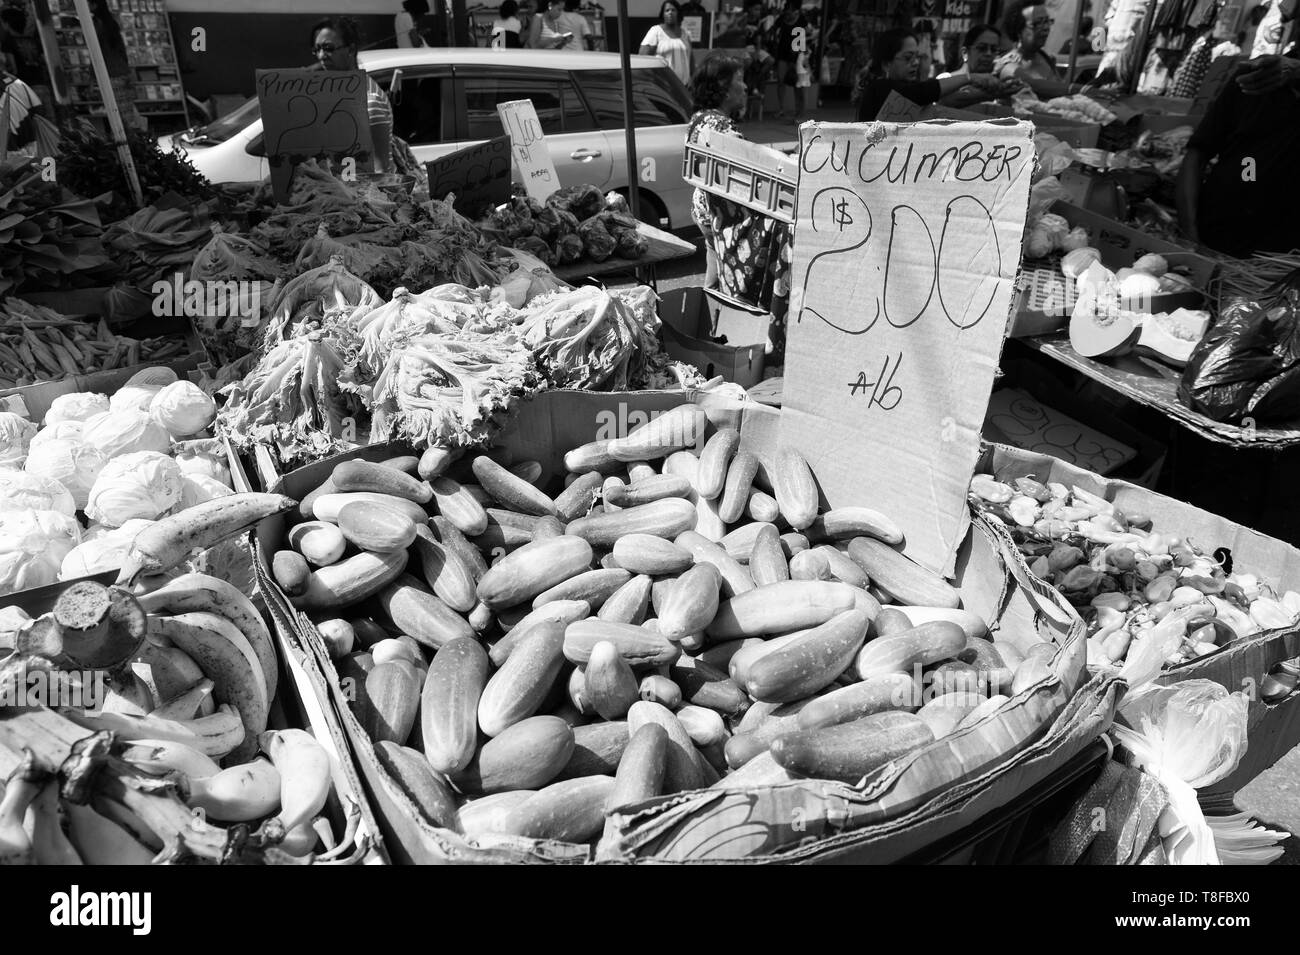 Port of spain, Trinidad and Tobago - November 28, 2015: Fresh vegetables and fruit ripe agricultural crop displayed for trade outdoors on market on streetscape background - Stock Image